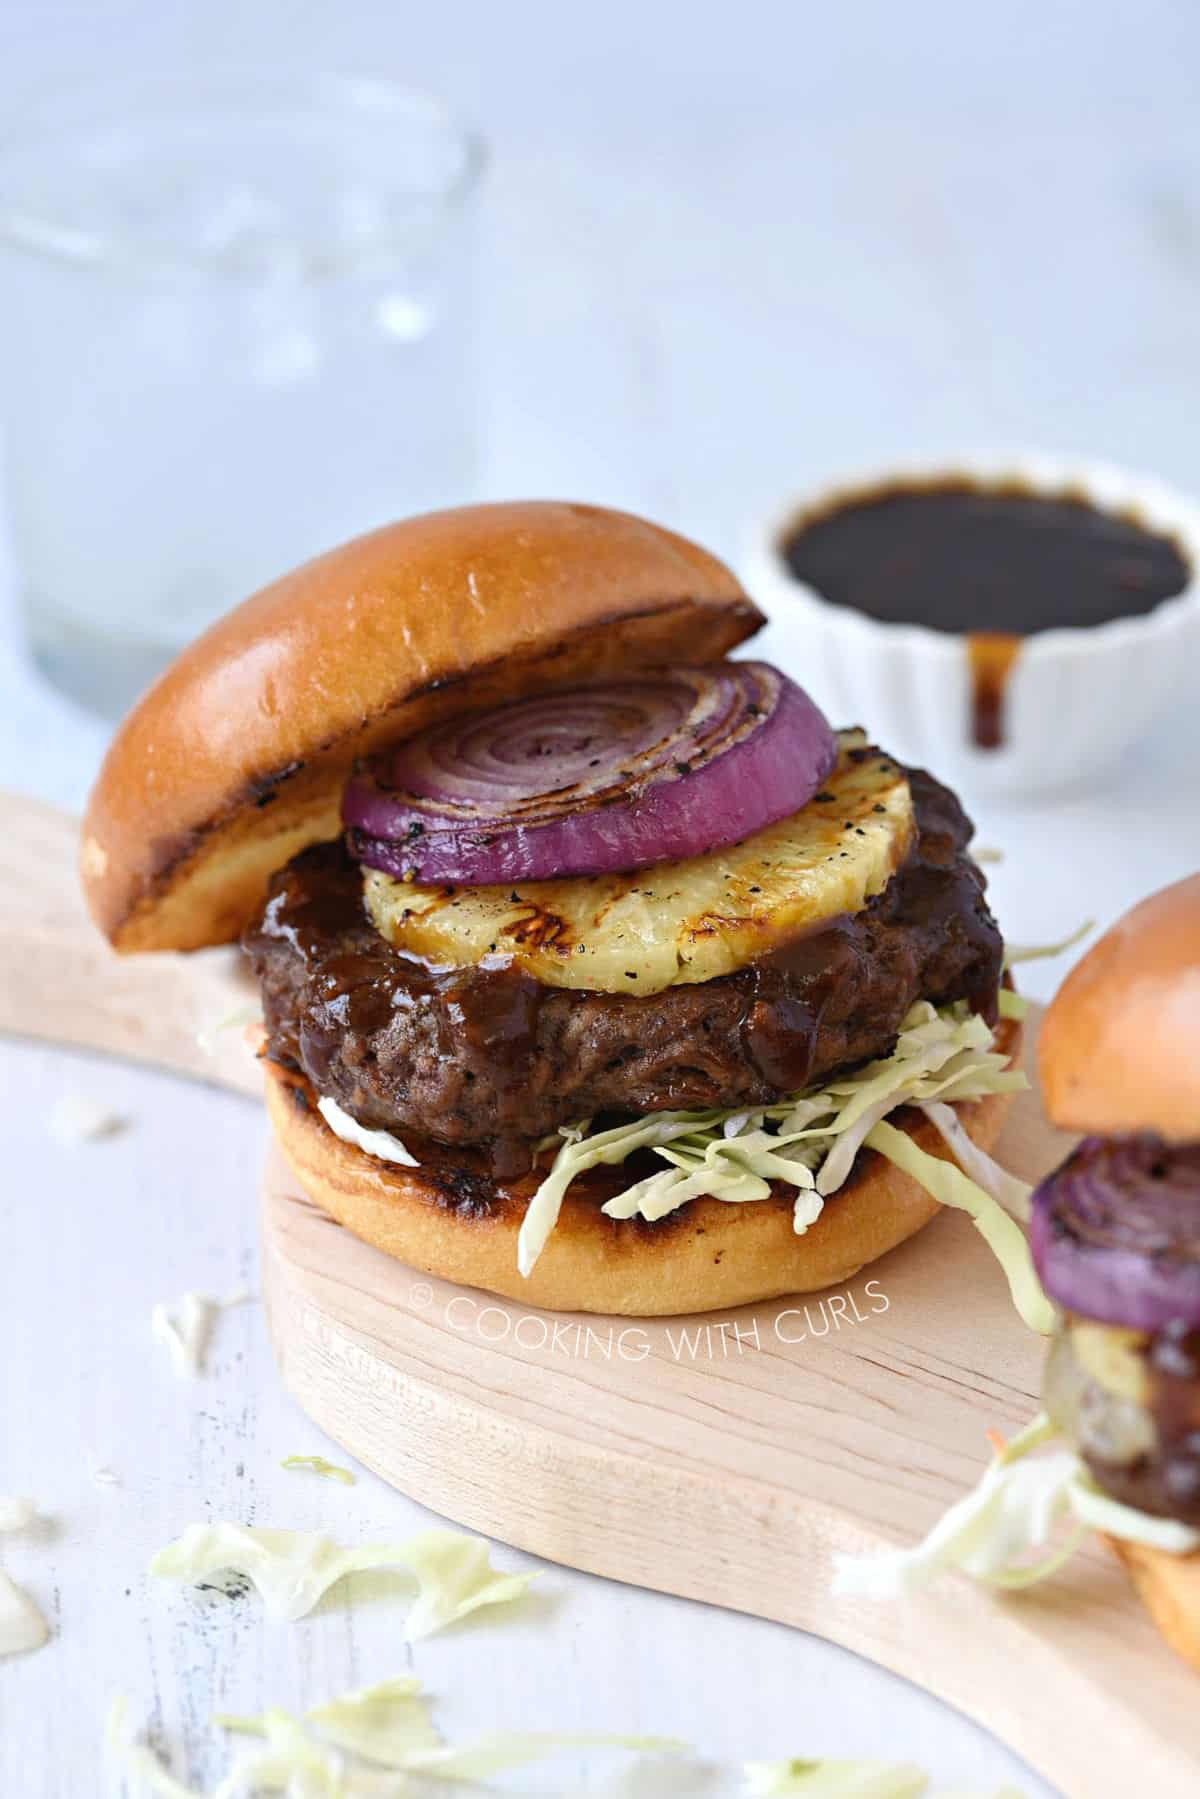 a grilled Hawaiian teriyaki burger with the top bun tilted at an angle with a bowl of sauce in the background and the edge of a second burger in front.